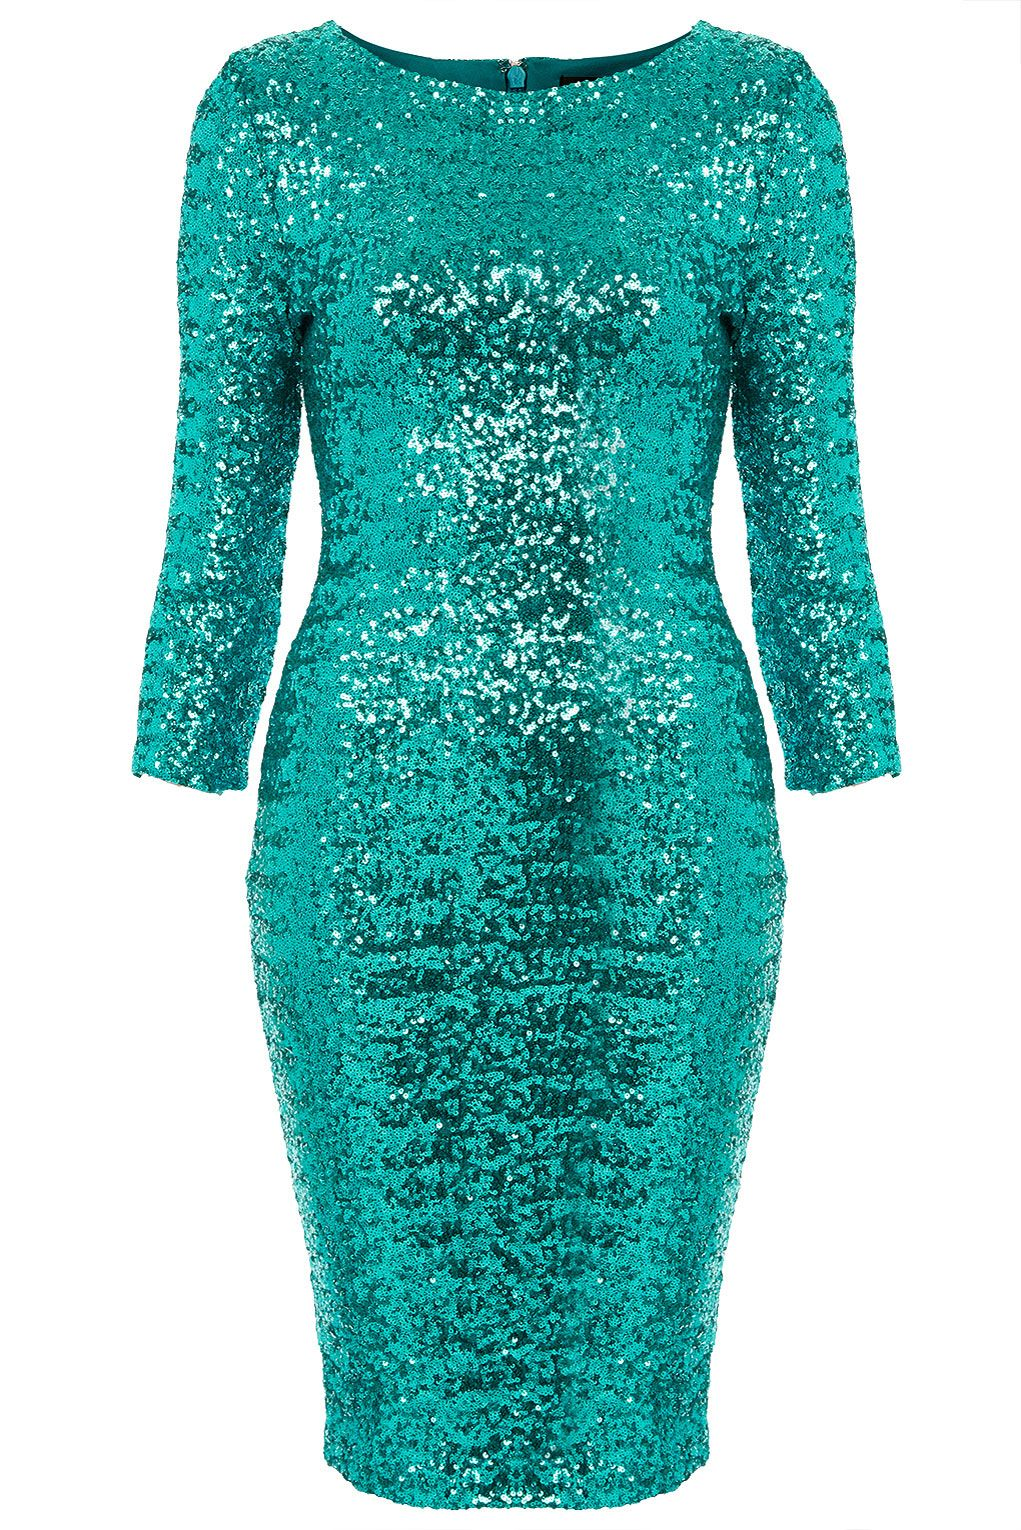 0b6f4c3e90a Topshop Sequin Midi Dress in Blue (turquoise)